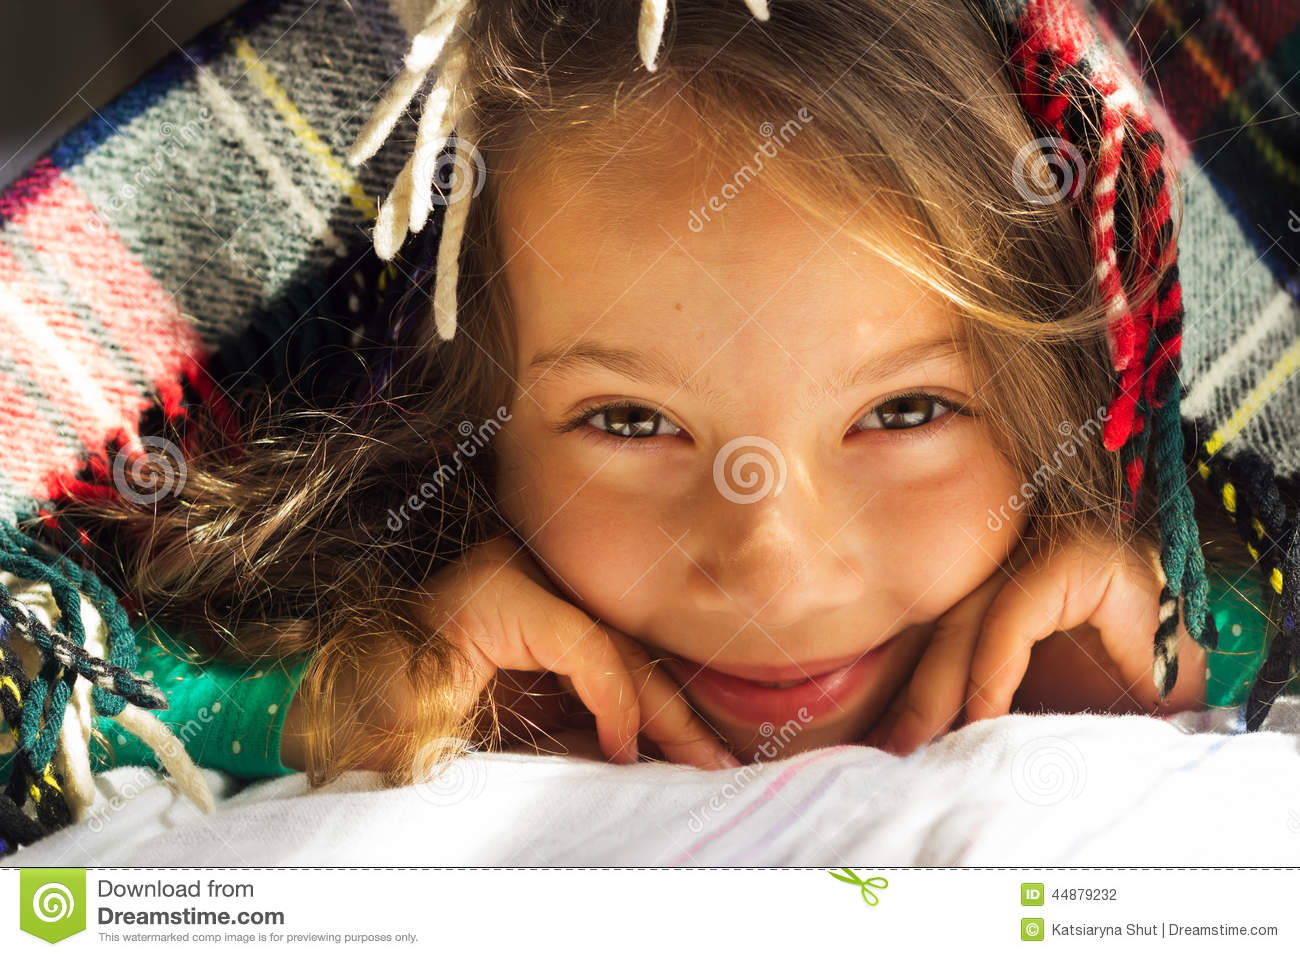 Good morning portrait of cute curly smiling school girl look out from warm plaid